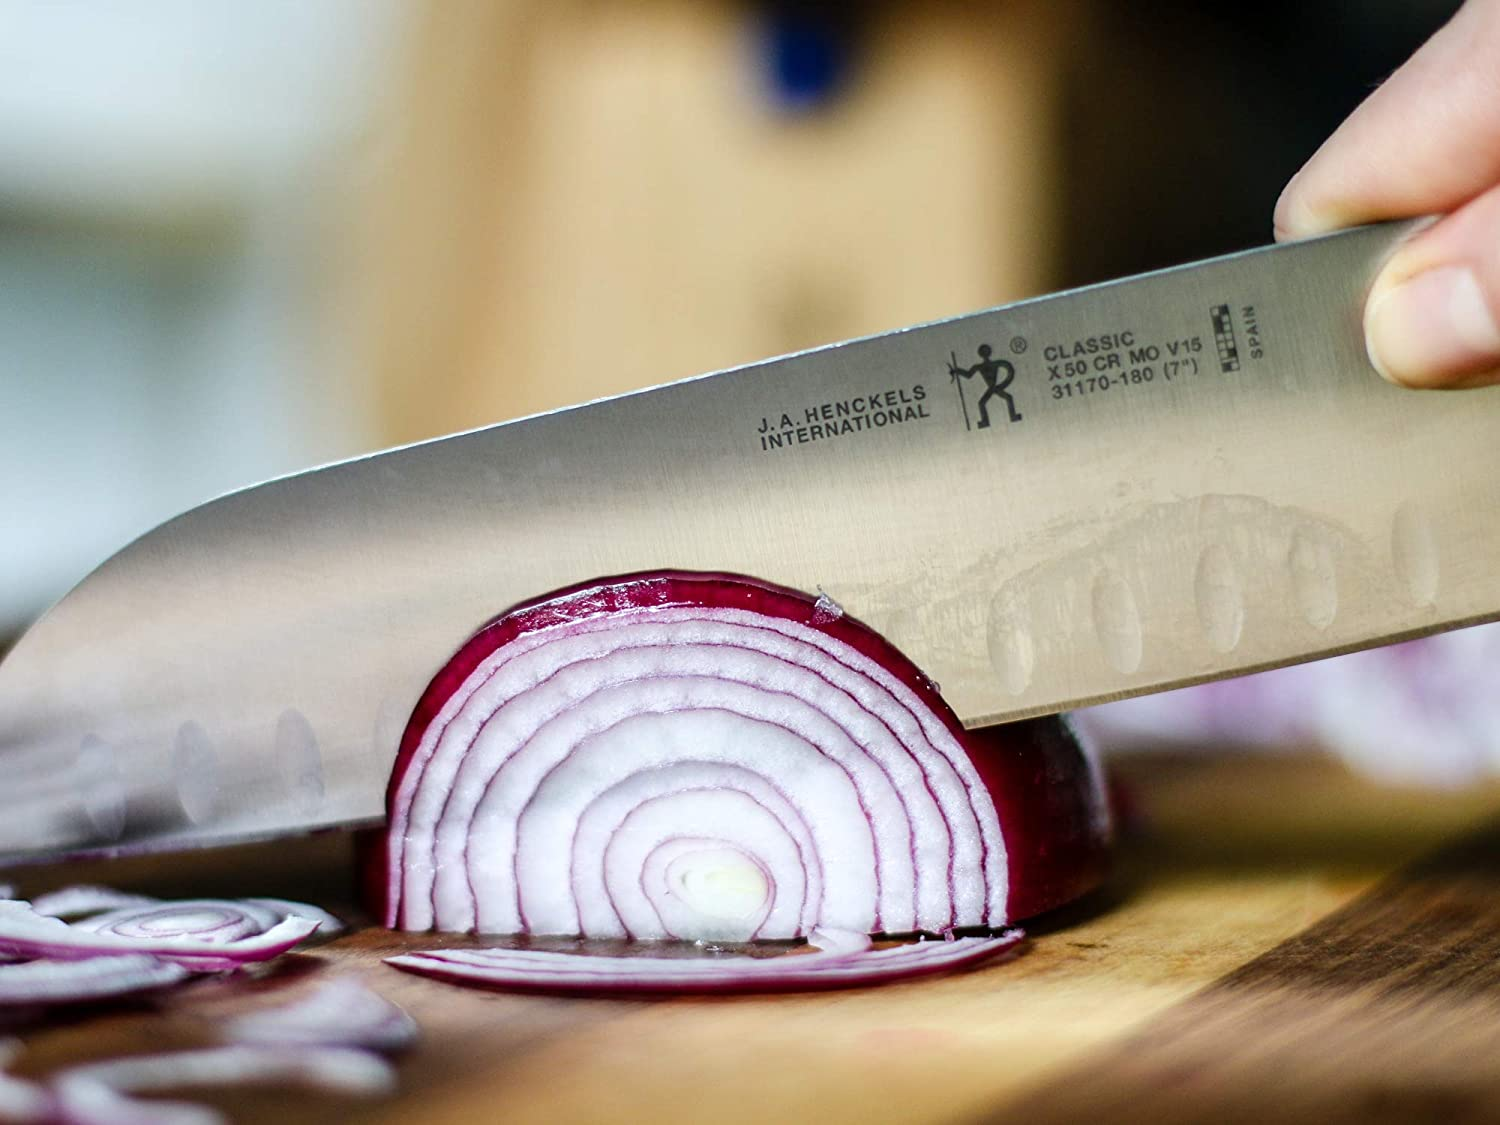 Best mid-priced santoku knife- J.A. HENCKELS Classic Hollow Edge in use